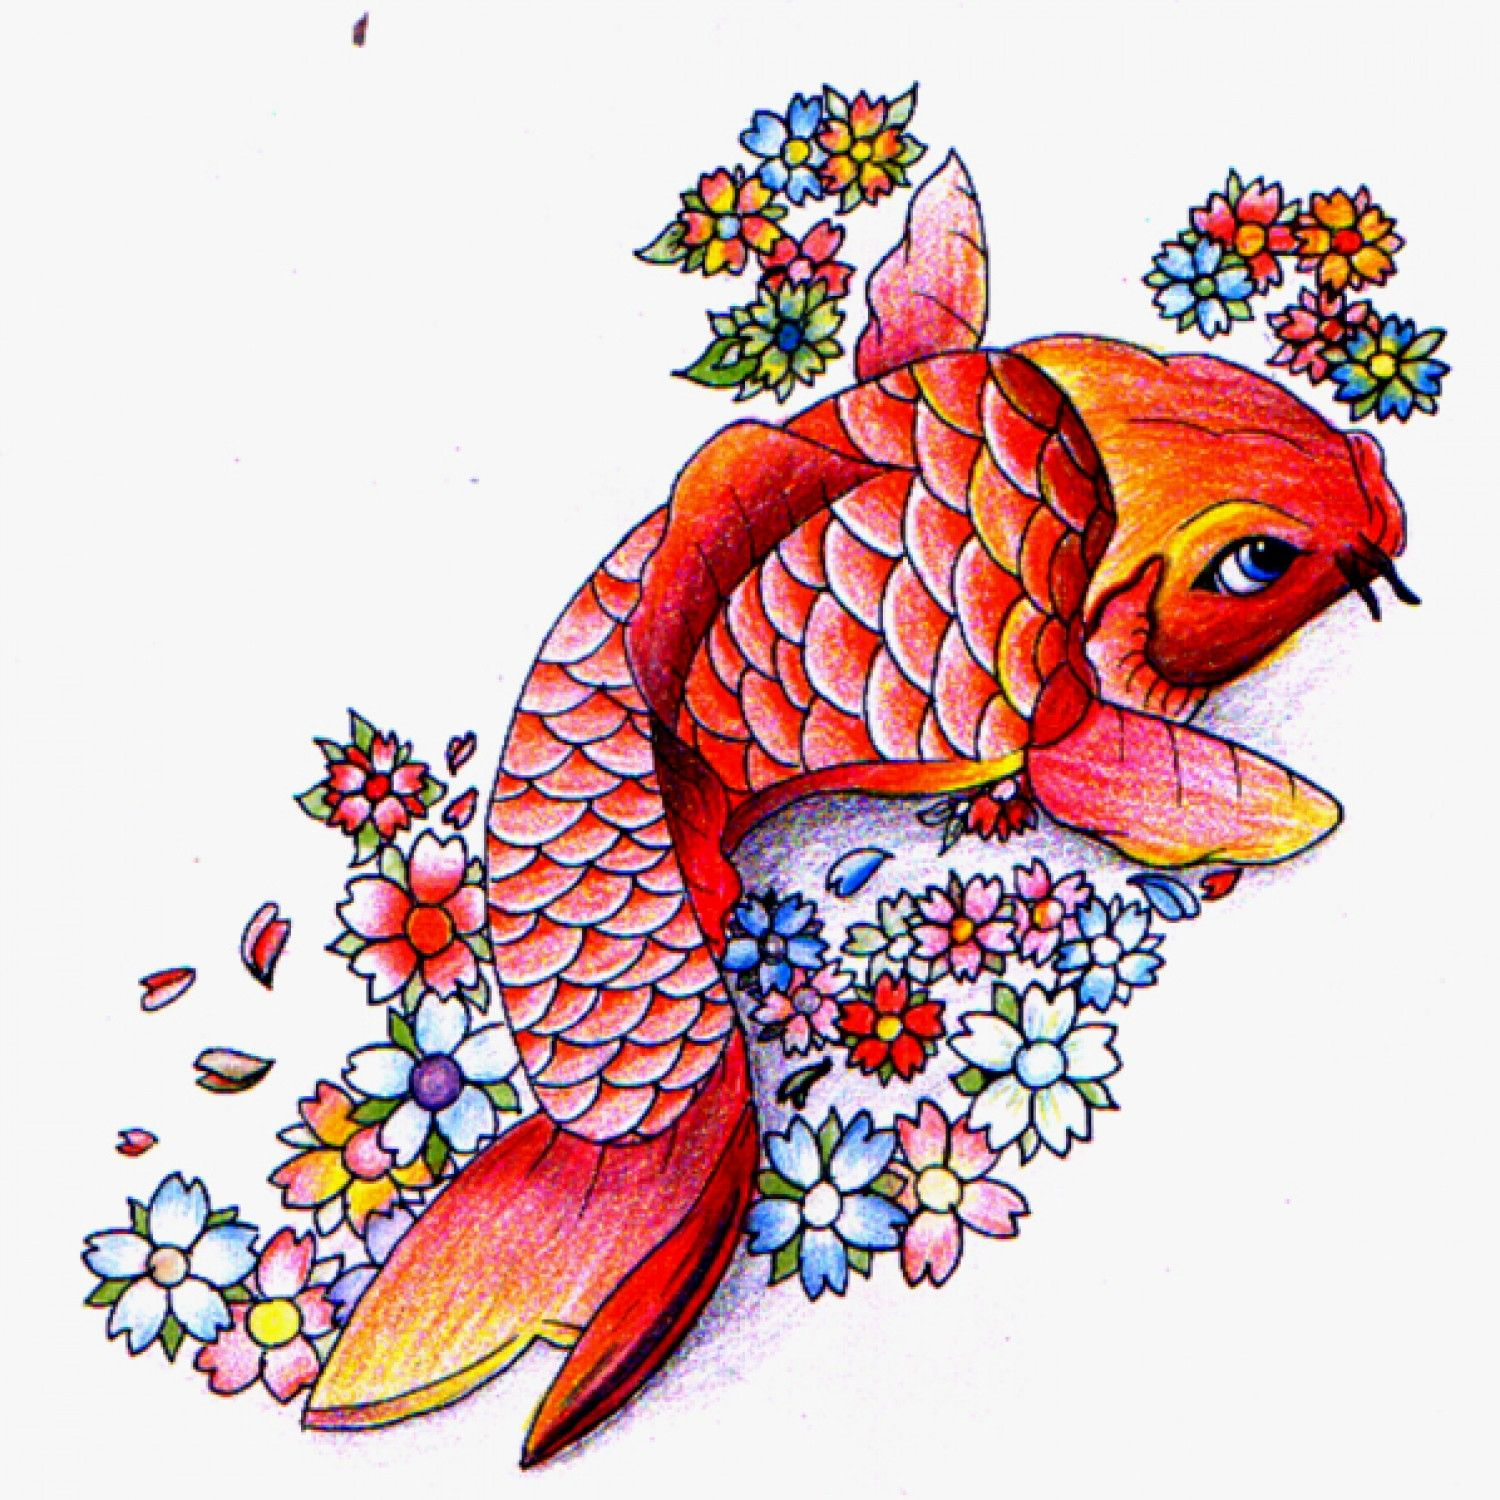 Pin by Tara Parmer Eastman on Kawaii | Pinterest | Koi fish tattoo ...